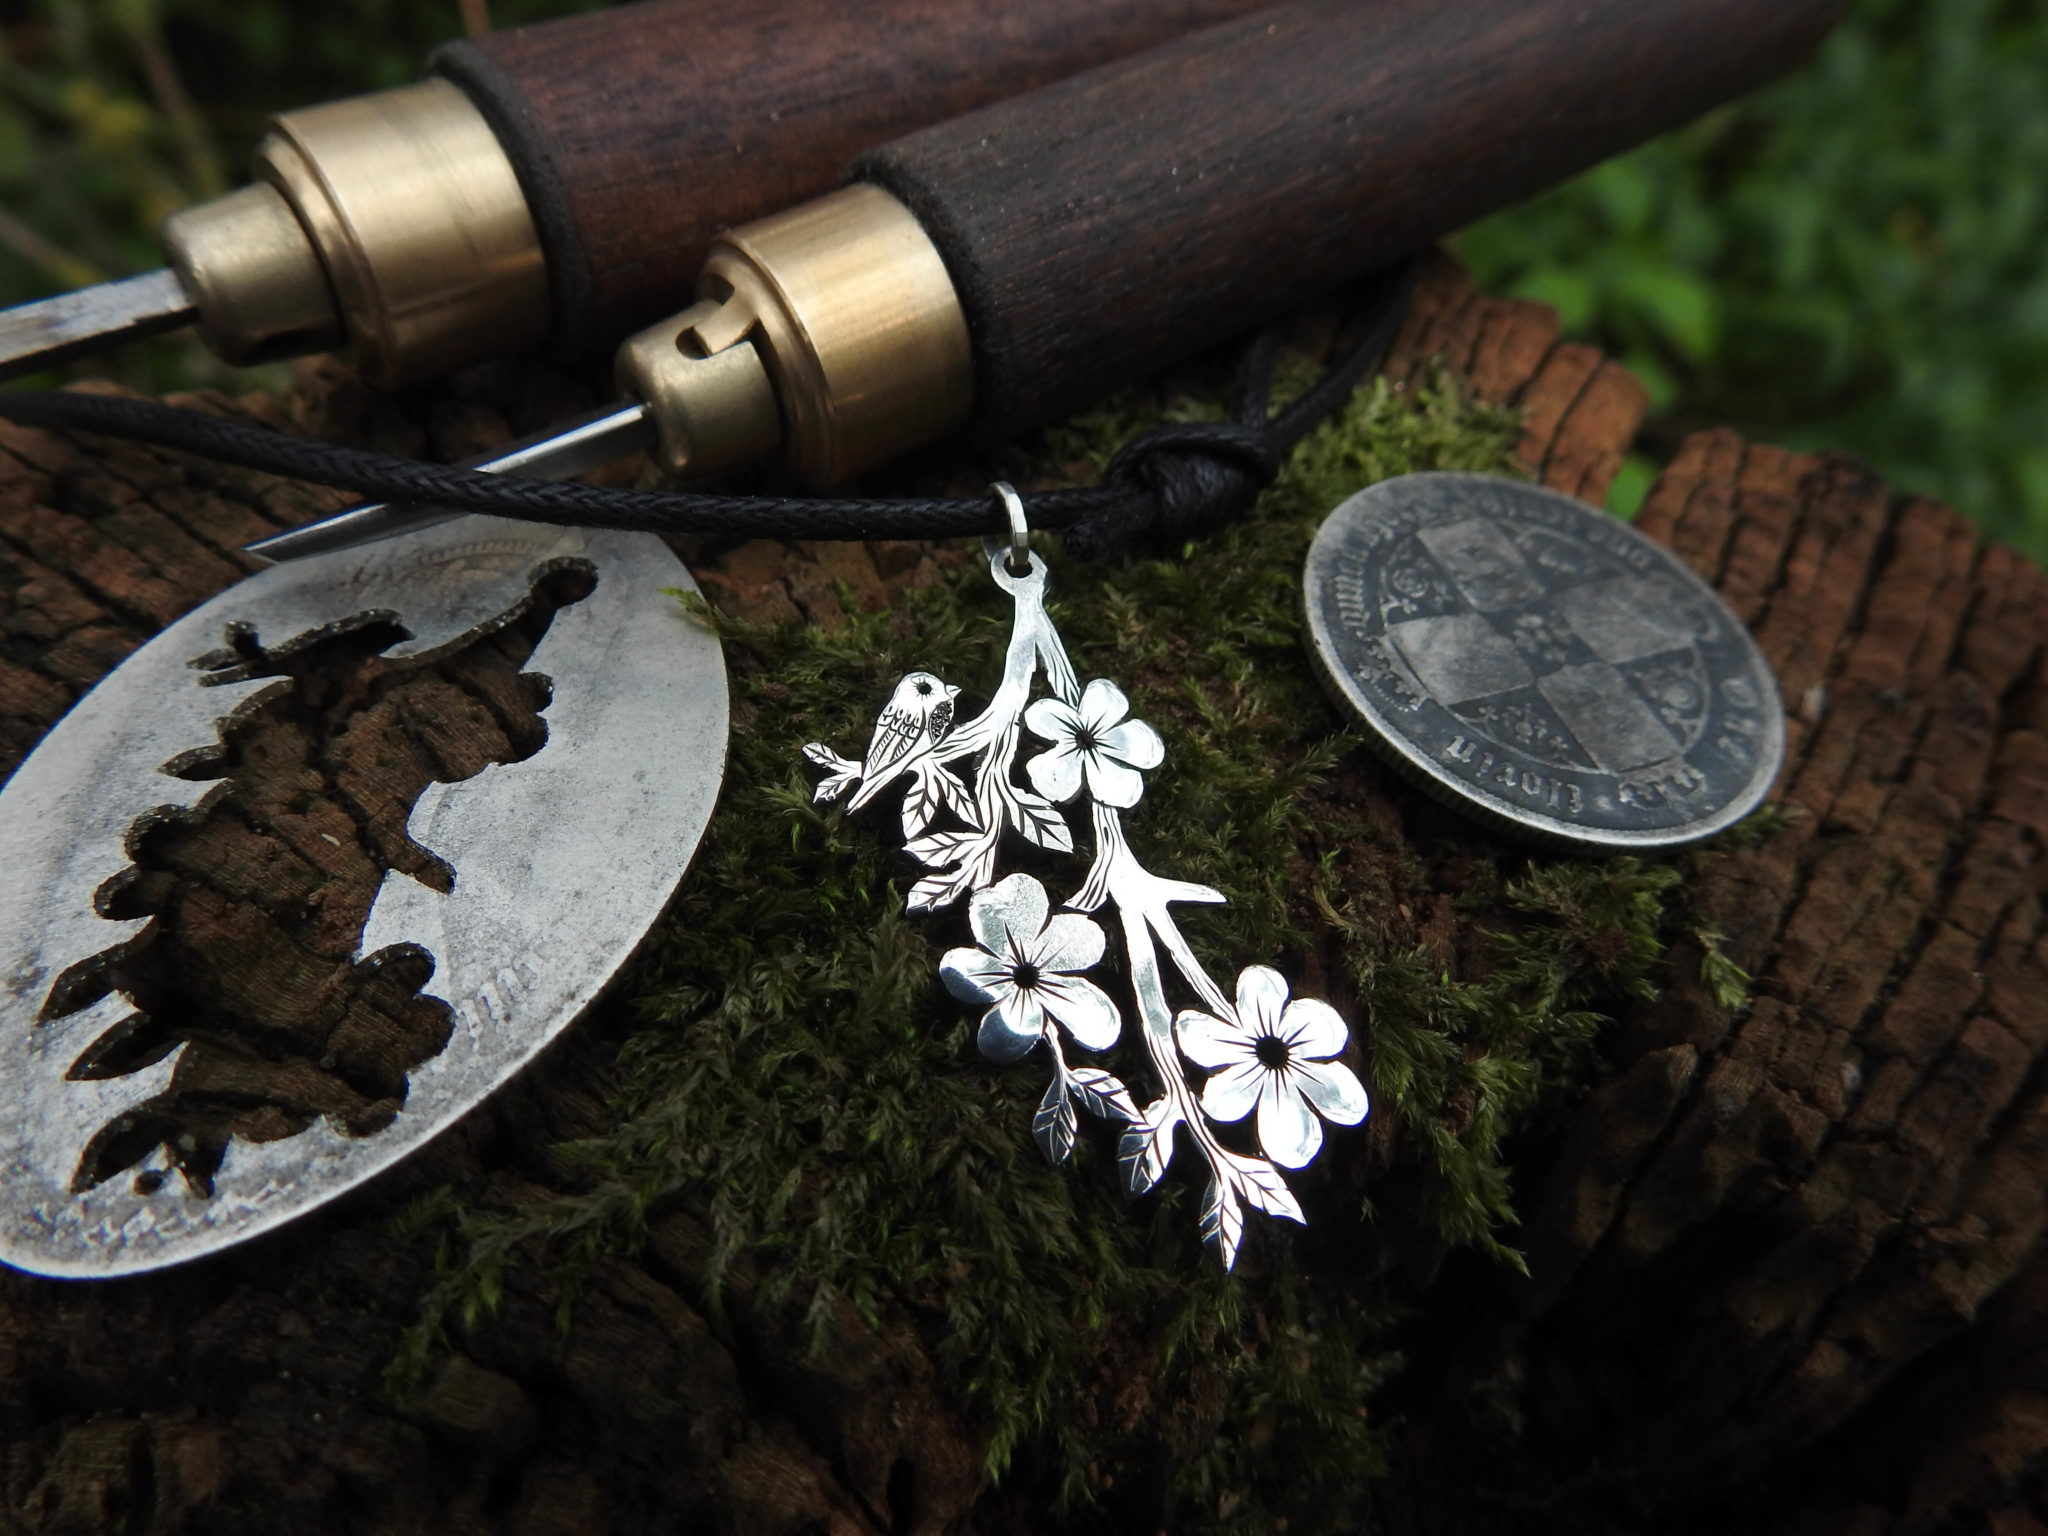 Beckoning the Seed Moon silver bird necklace - Recycled silver Florin